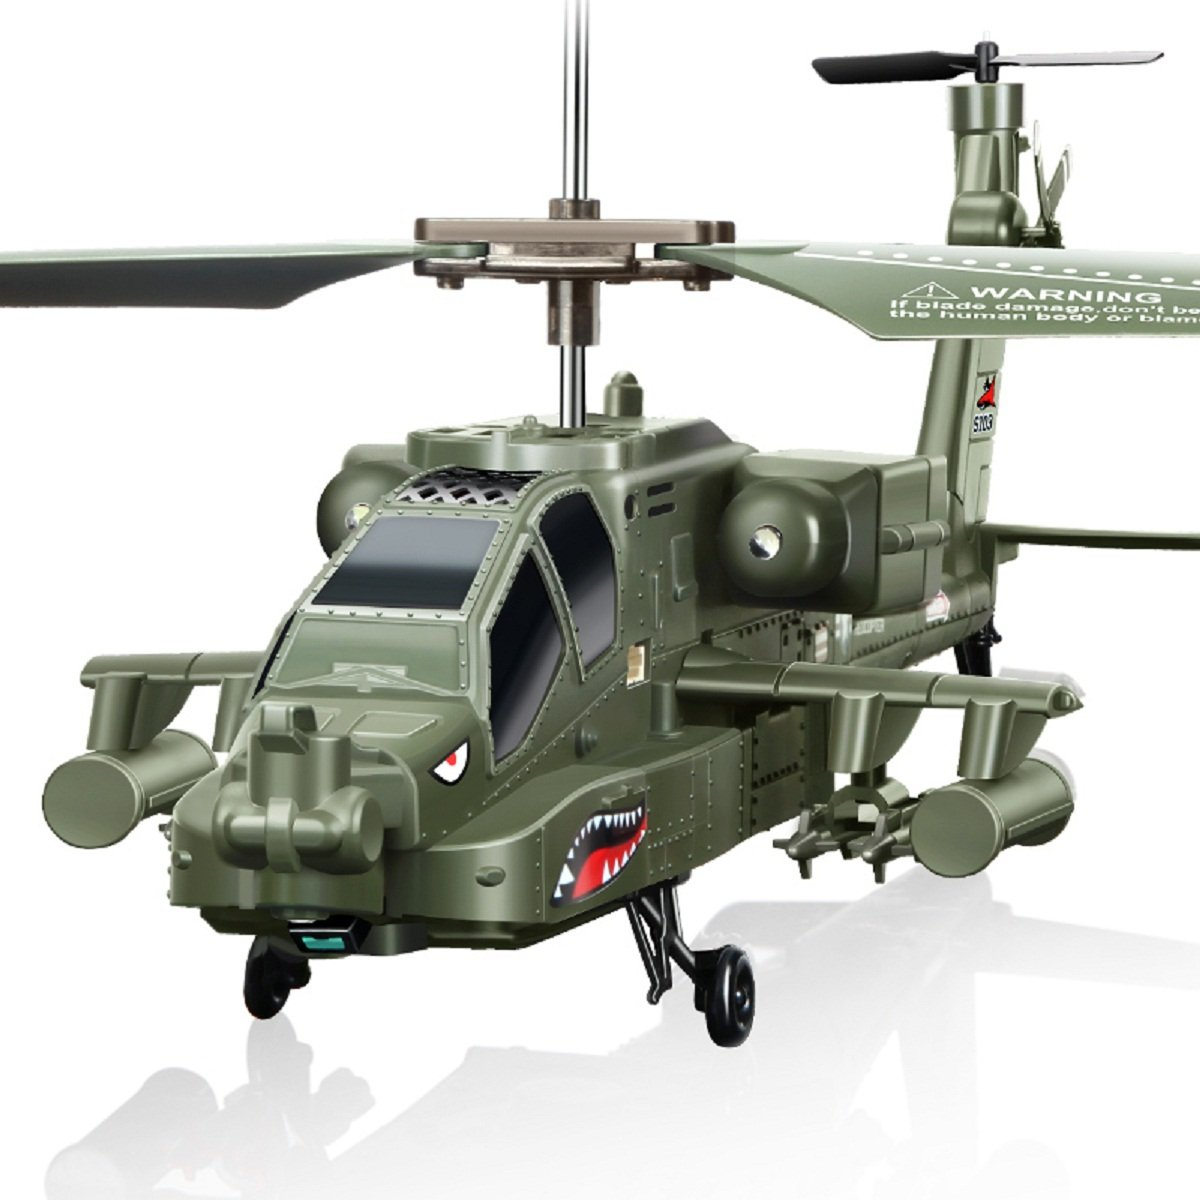 Rc Blackhawk Helicopter For Sale on rc model blackhawk, rc model helicopters military style, rc uh-60 blackhawk, rc military helicopter toy, rc control helicopters blackhawk,